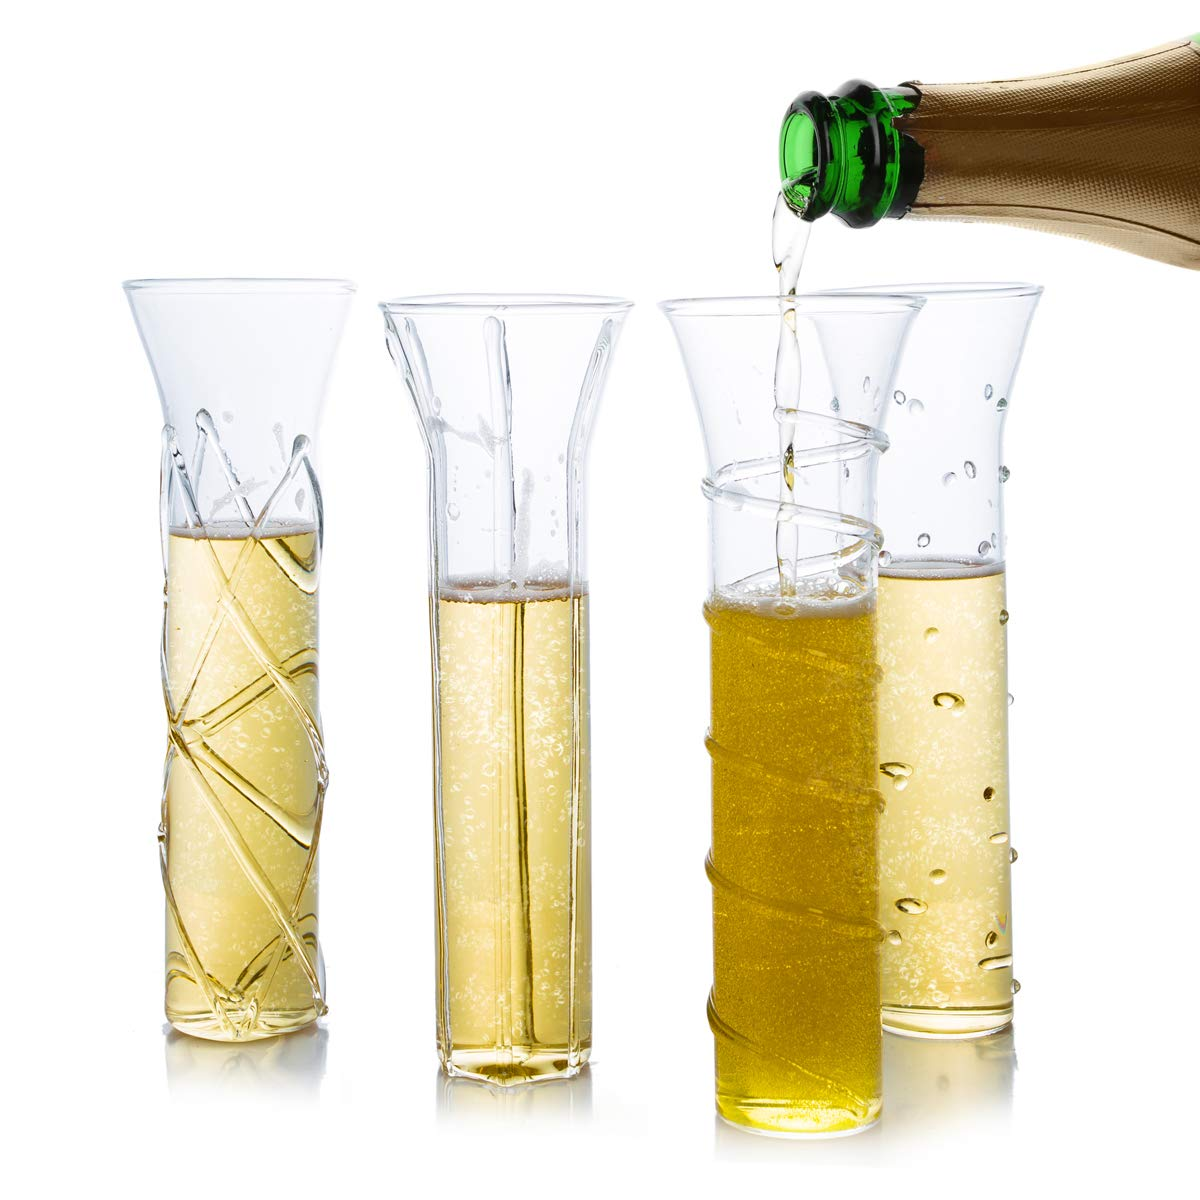 4 Pack Stemless Champagne Flutes 5 oz- Handmade Designs- 4 Unique Champagne Glasses for New Years Eve Party Decor - Celebration for Special Occasions